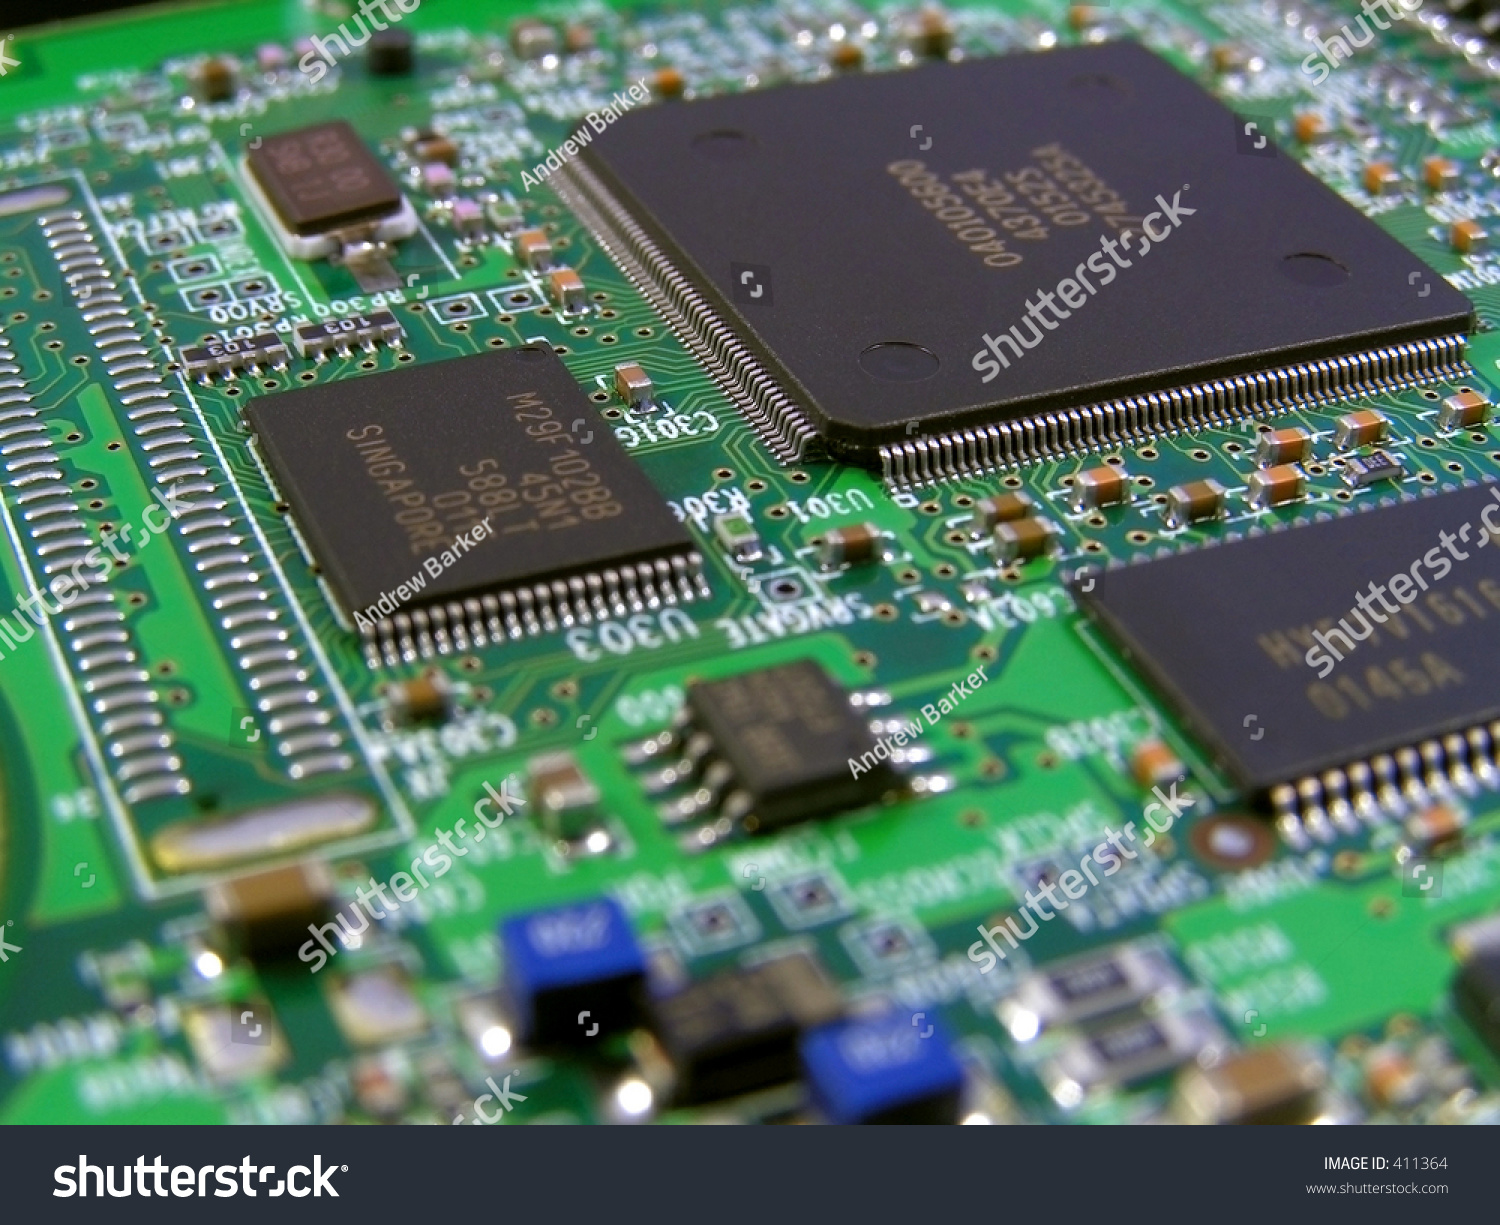 Printed Circuit Board On Graphics Card Stock Photo Edit Now 411364 What Is The Name Of A